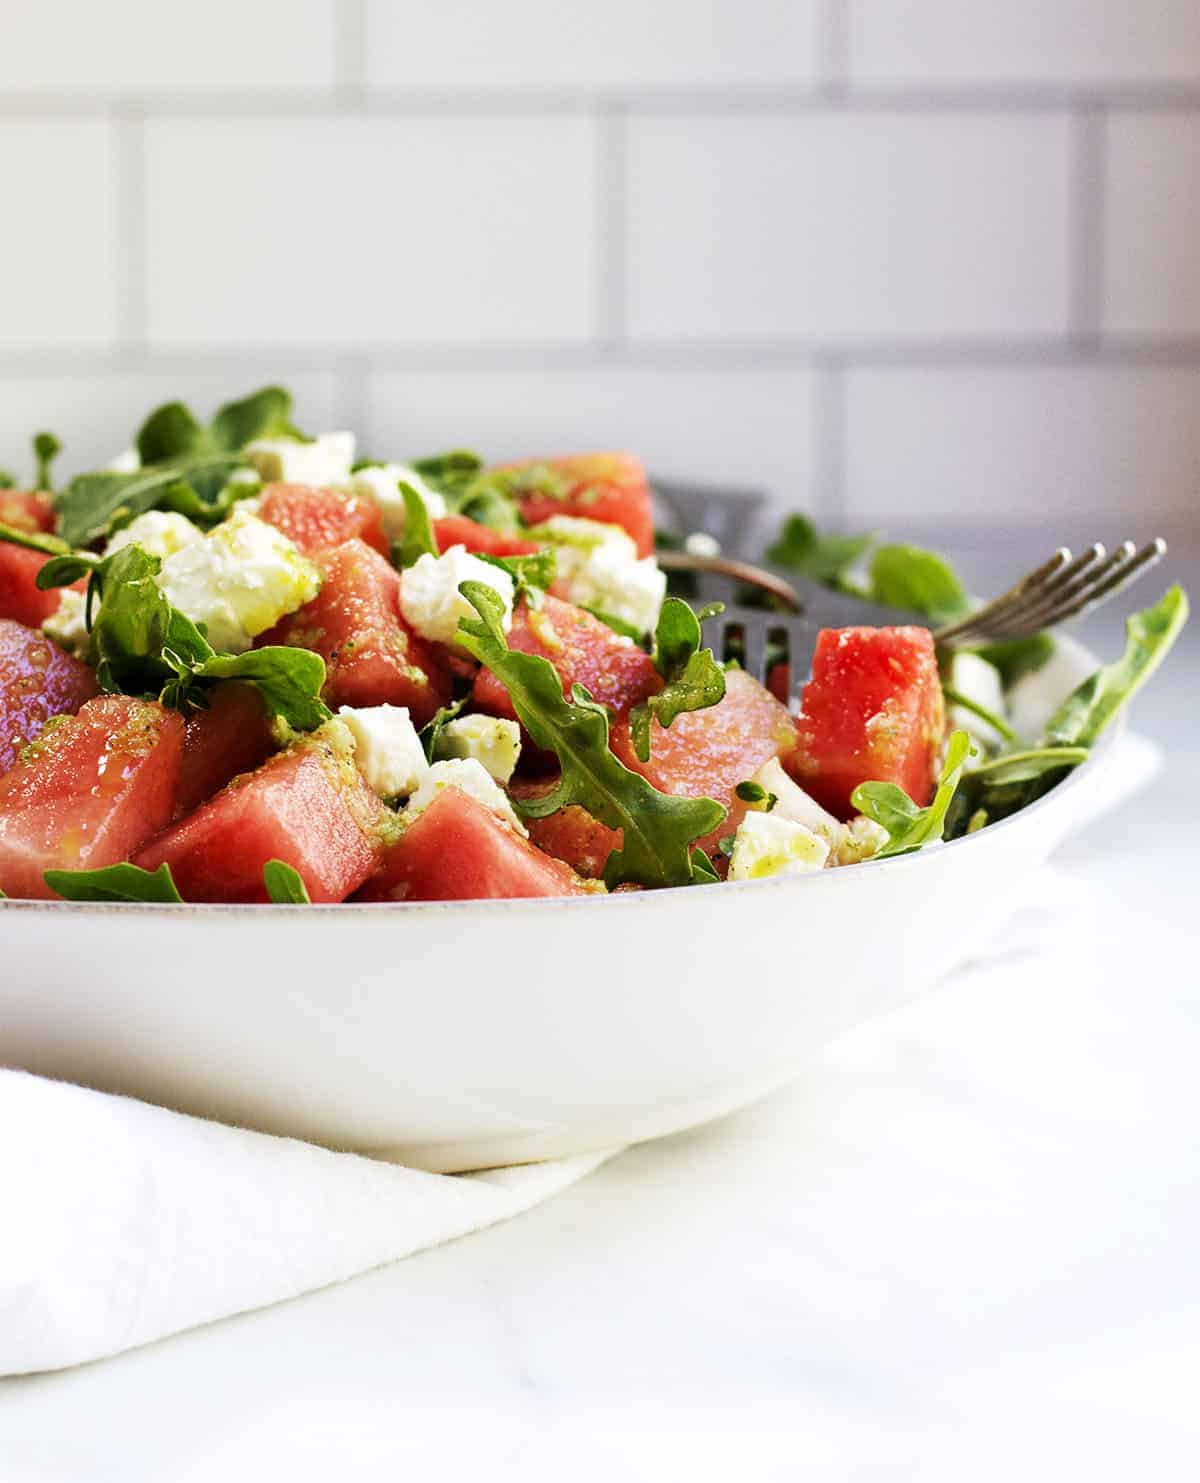 watermelon and arugula salad with feta served in a white ceramic bowl